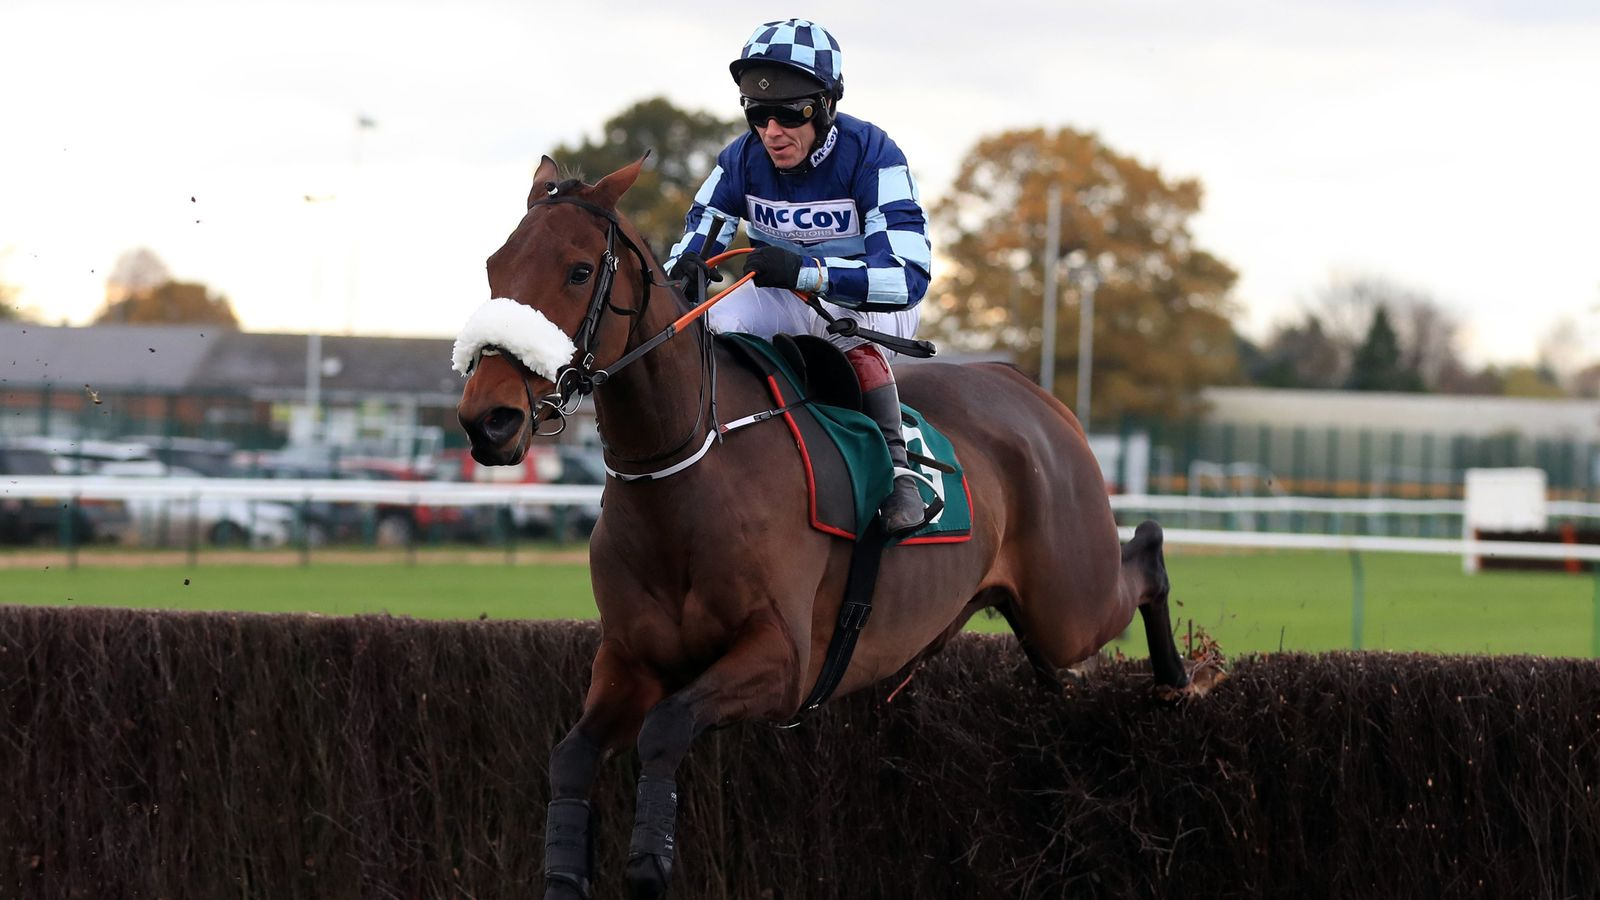 Thomas Darby gets in the Spirit at Fontwell